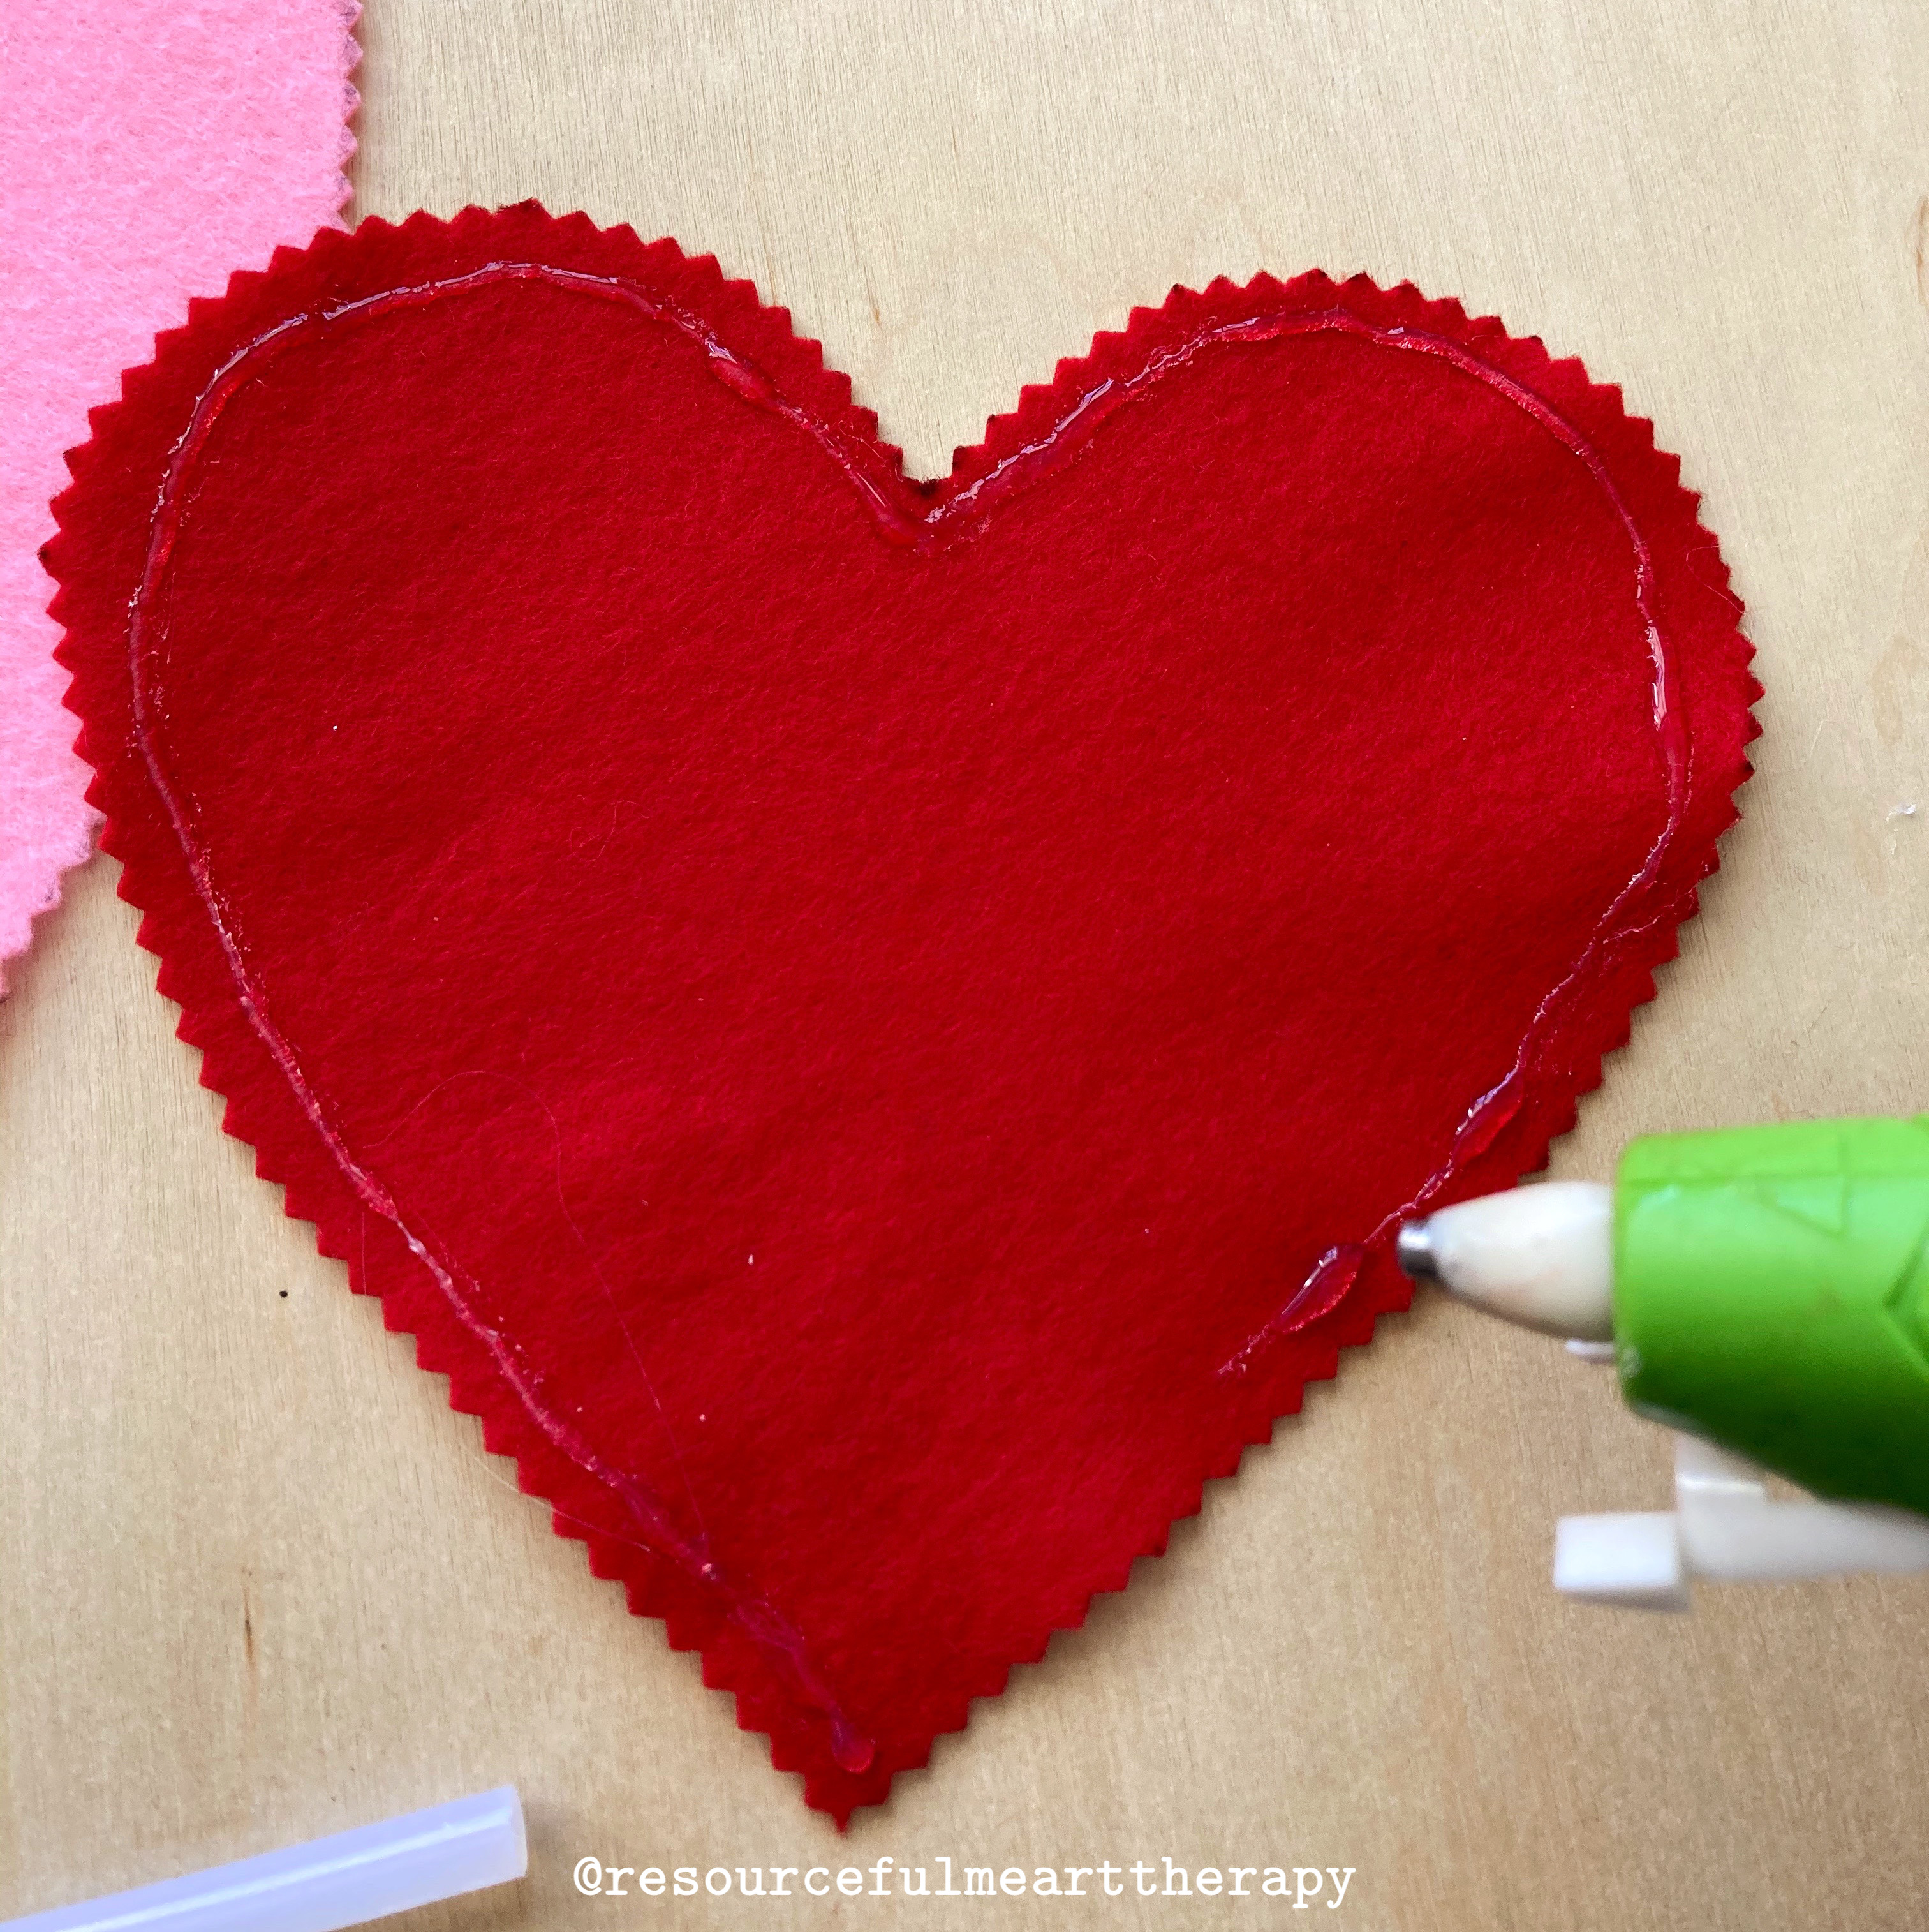 Photo of hot glue along the edge of a cut out felt heart shape, with a small space without glue